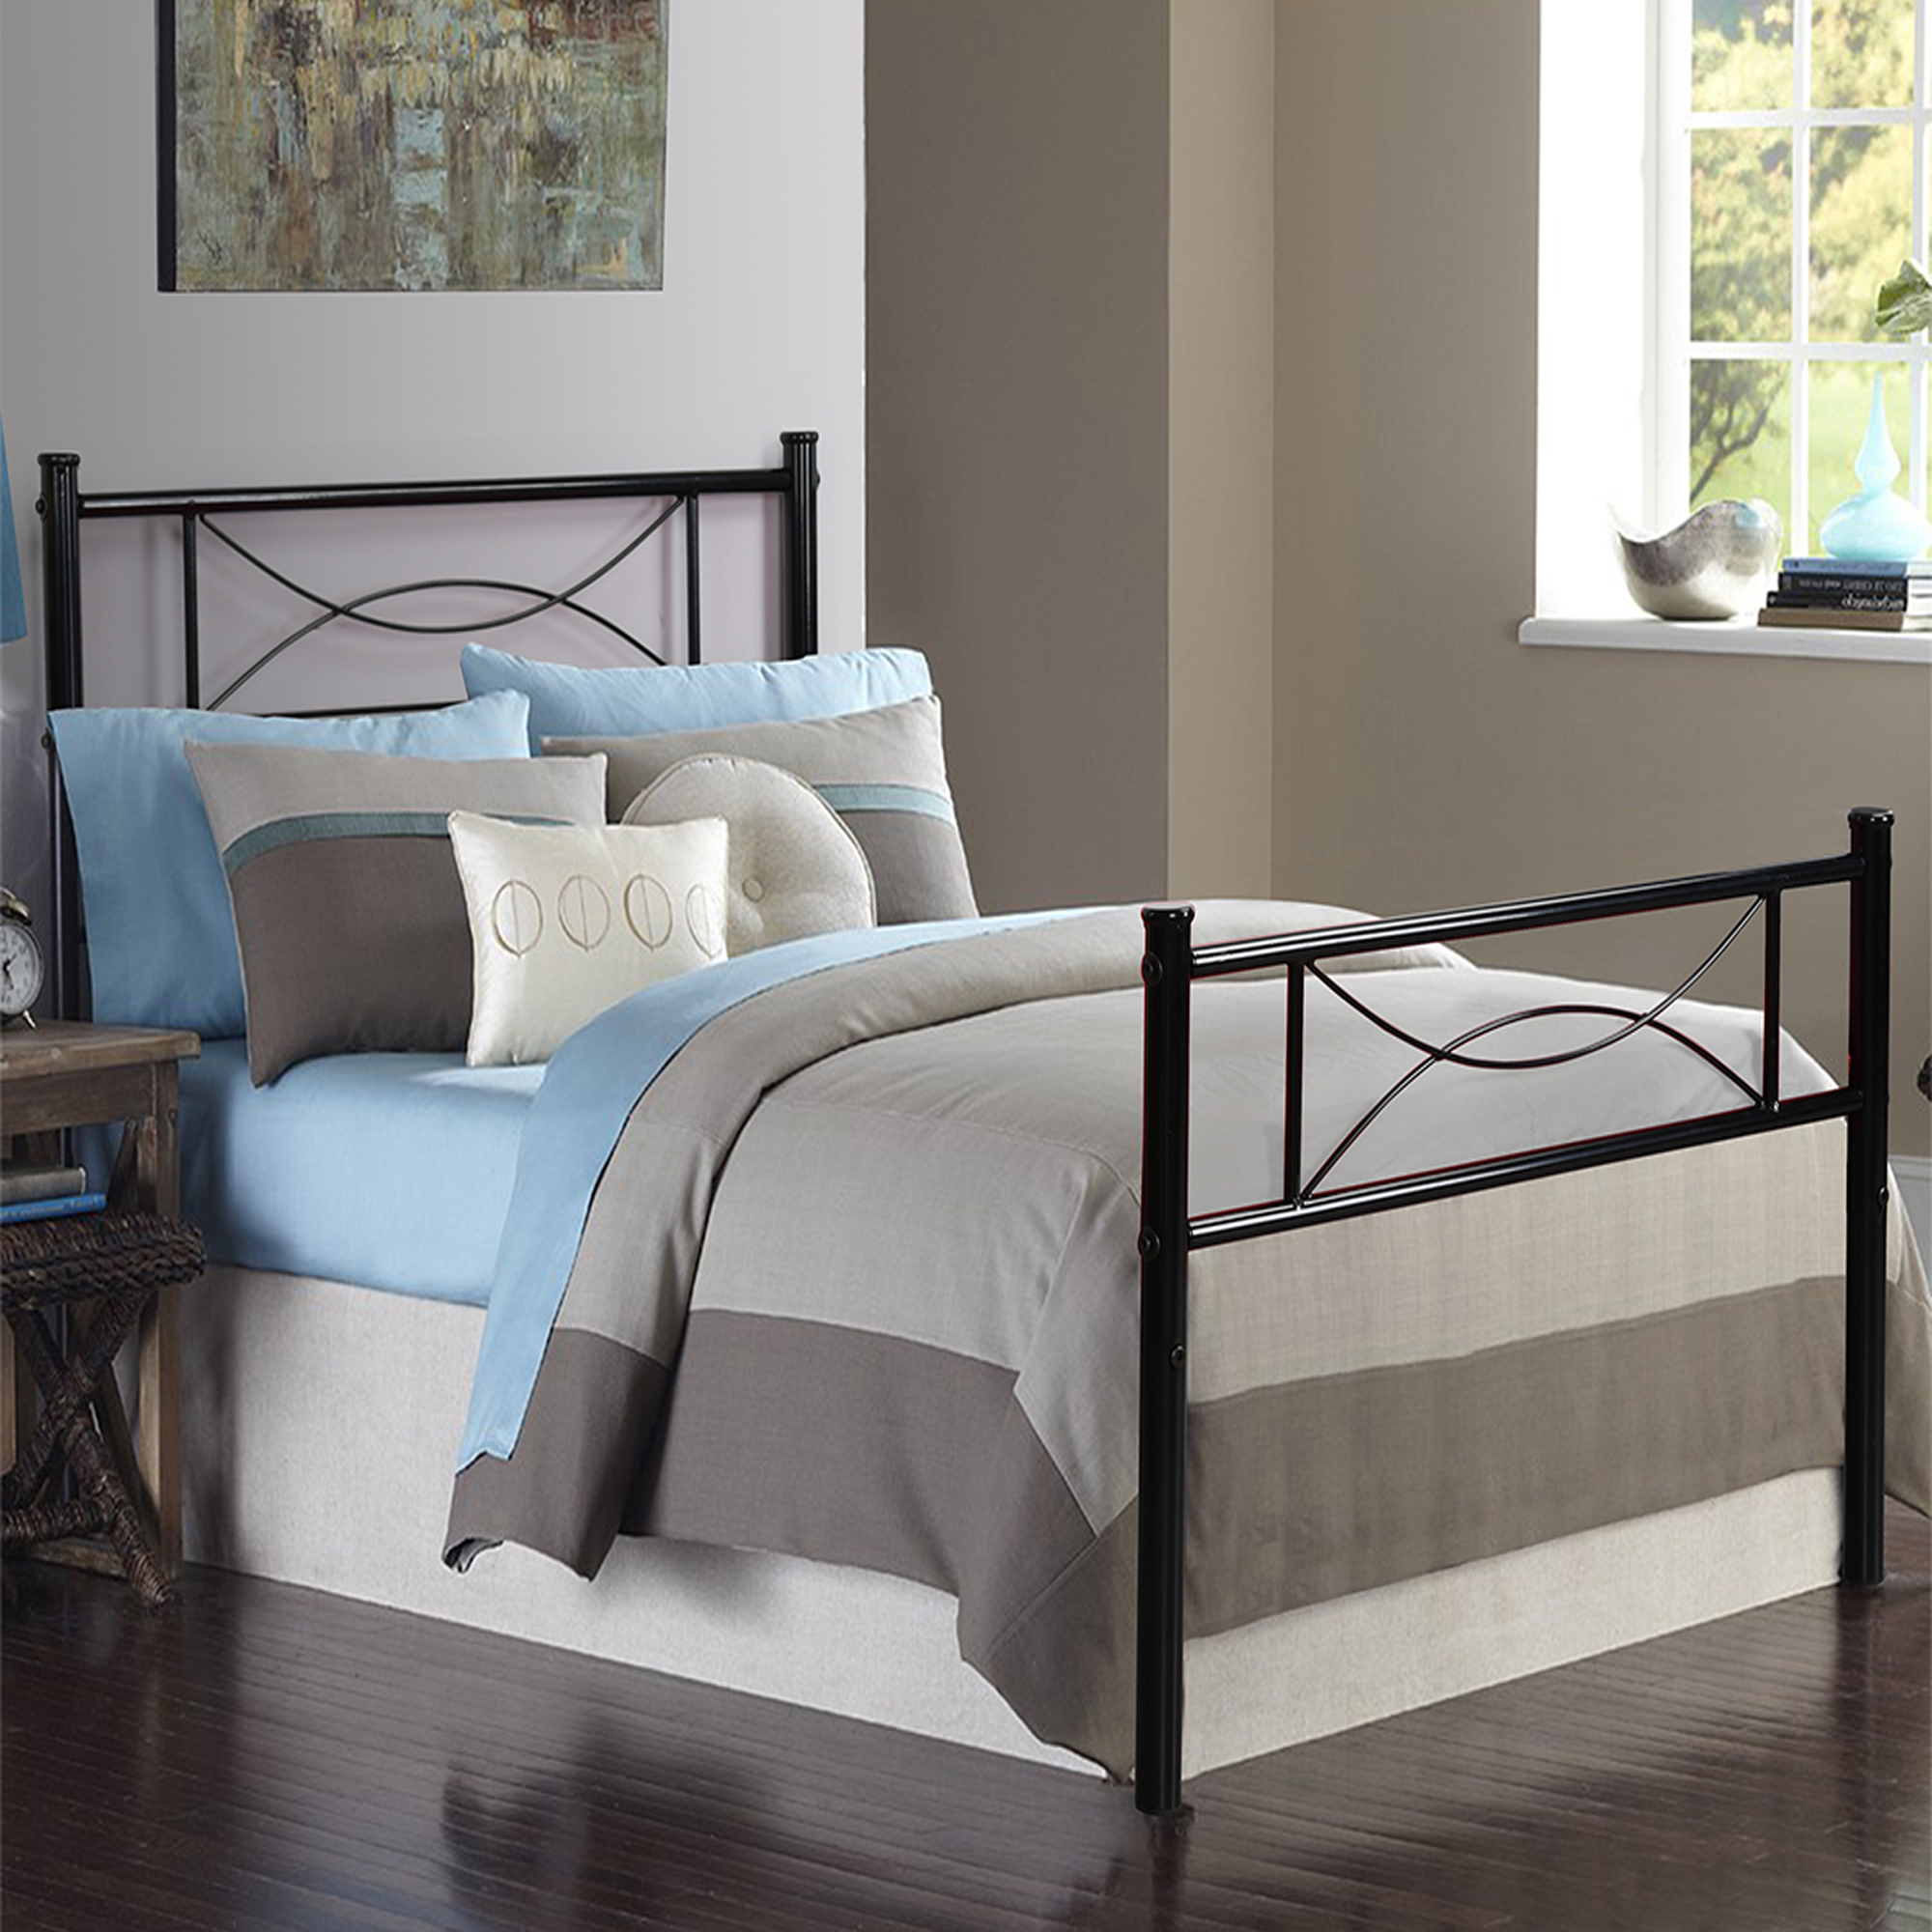 Cheerwing 12 7 High Metal Platform Bed Frame With Two